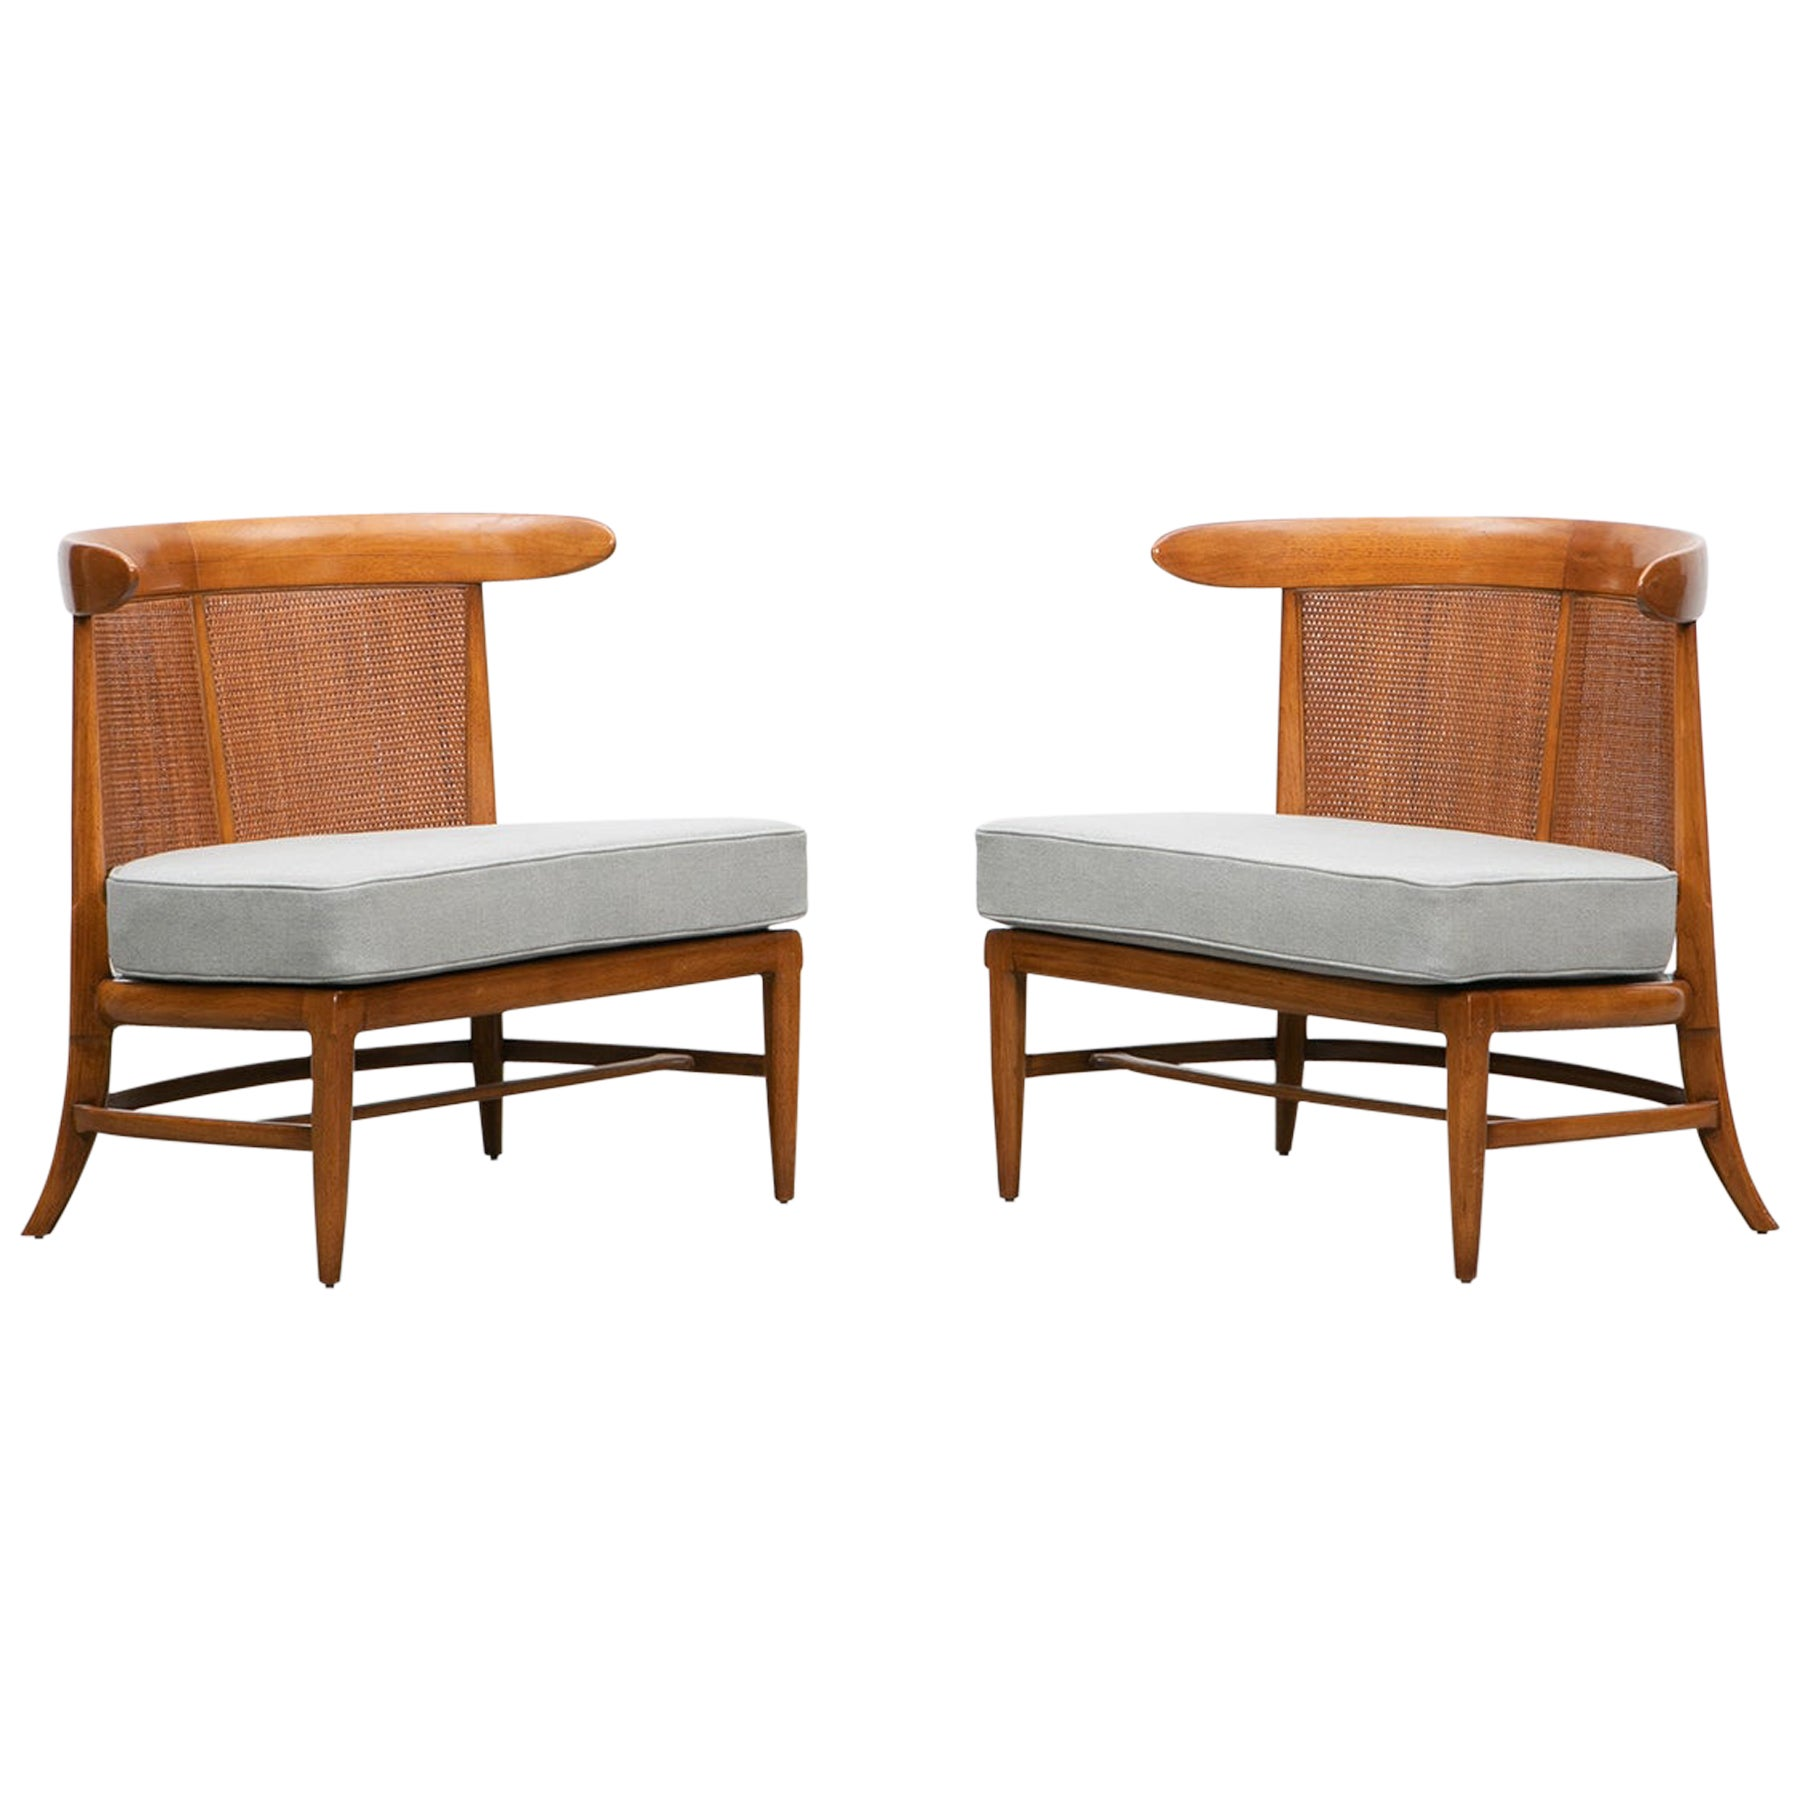 1950s Brown Walnut and Cane Lounge Chairs by Lubberts or Mulder 'g'